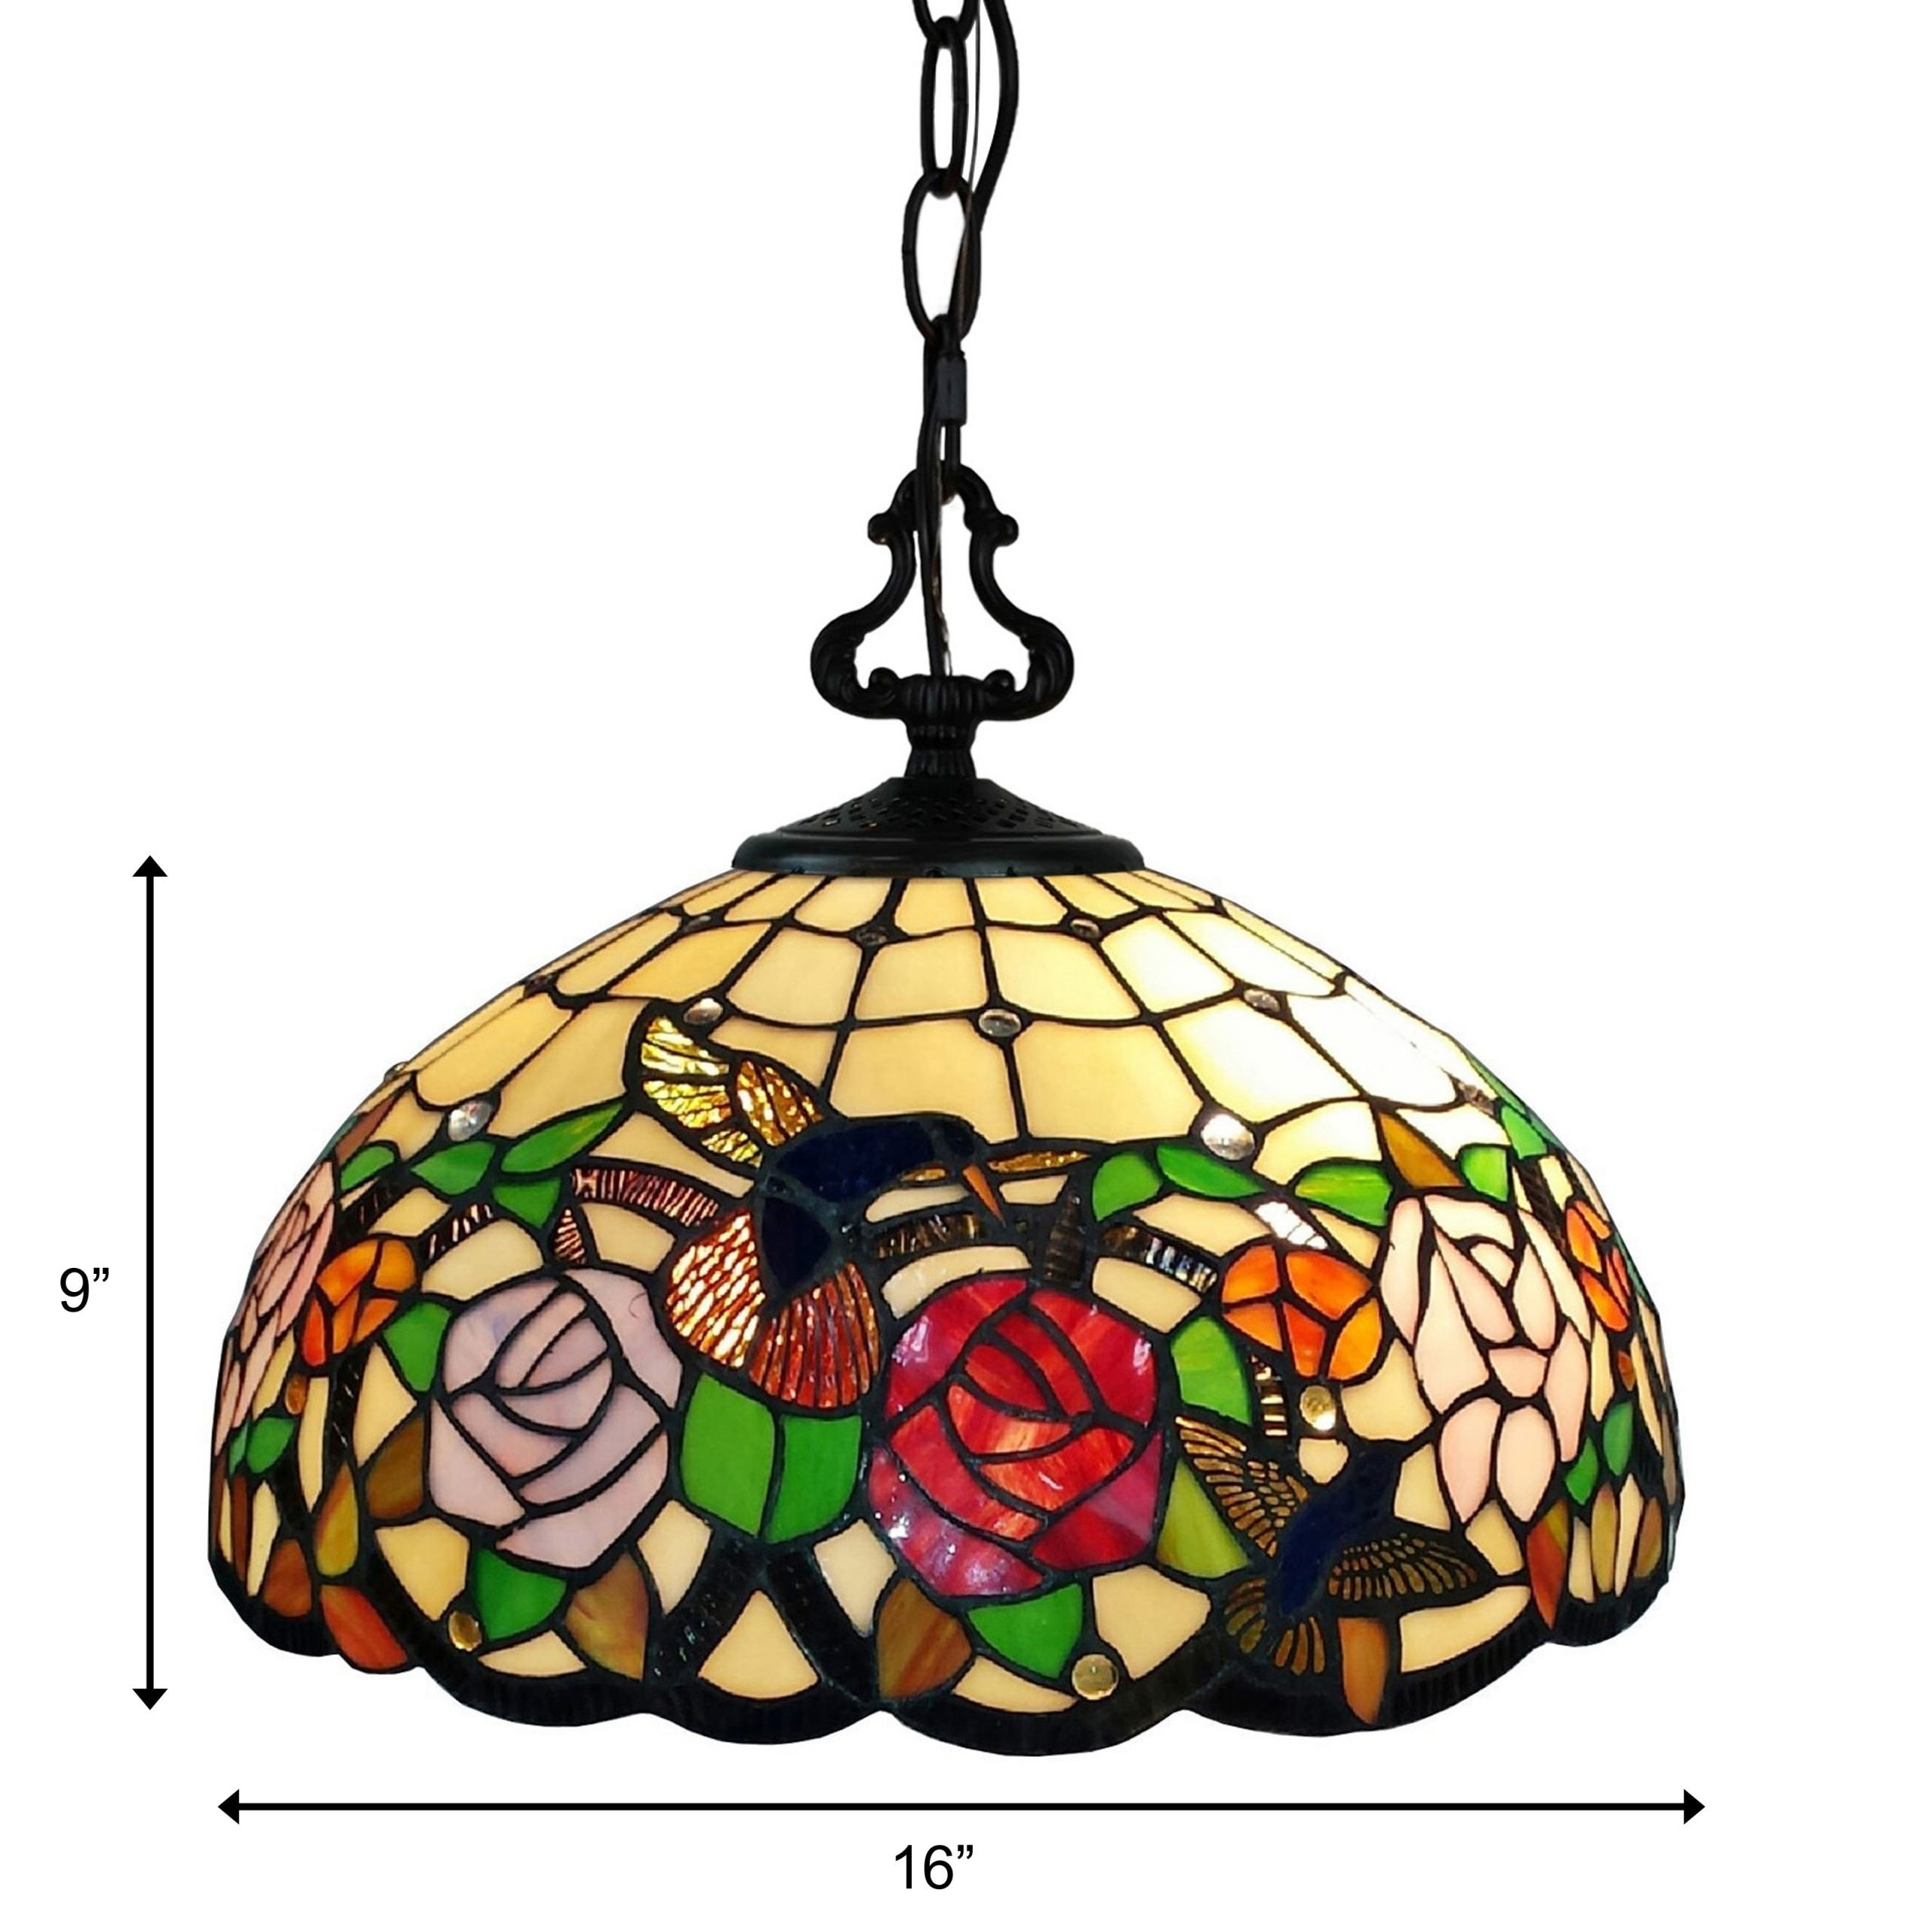 Picture of: Shop Black Friday Deals On Tiffany Style Hanging Pendant Lamp 16 Wide Stained Glass Shade Game Room Ceiling Fixture Am019hl16b Amora Lighting Overstock 28480170